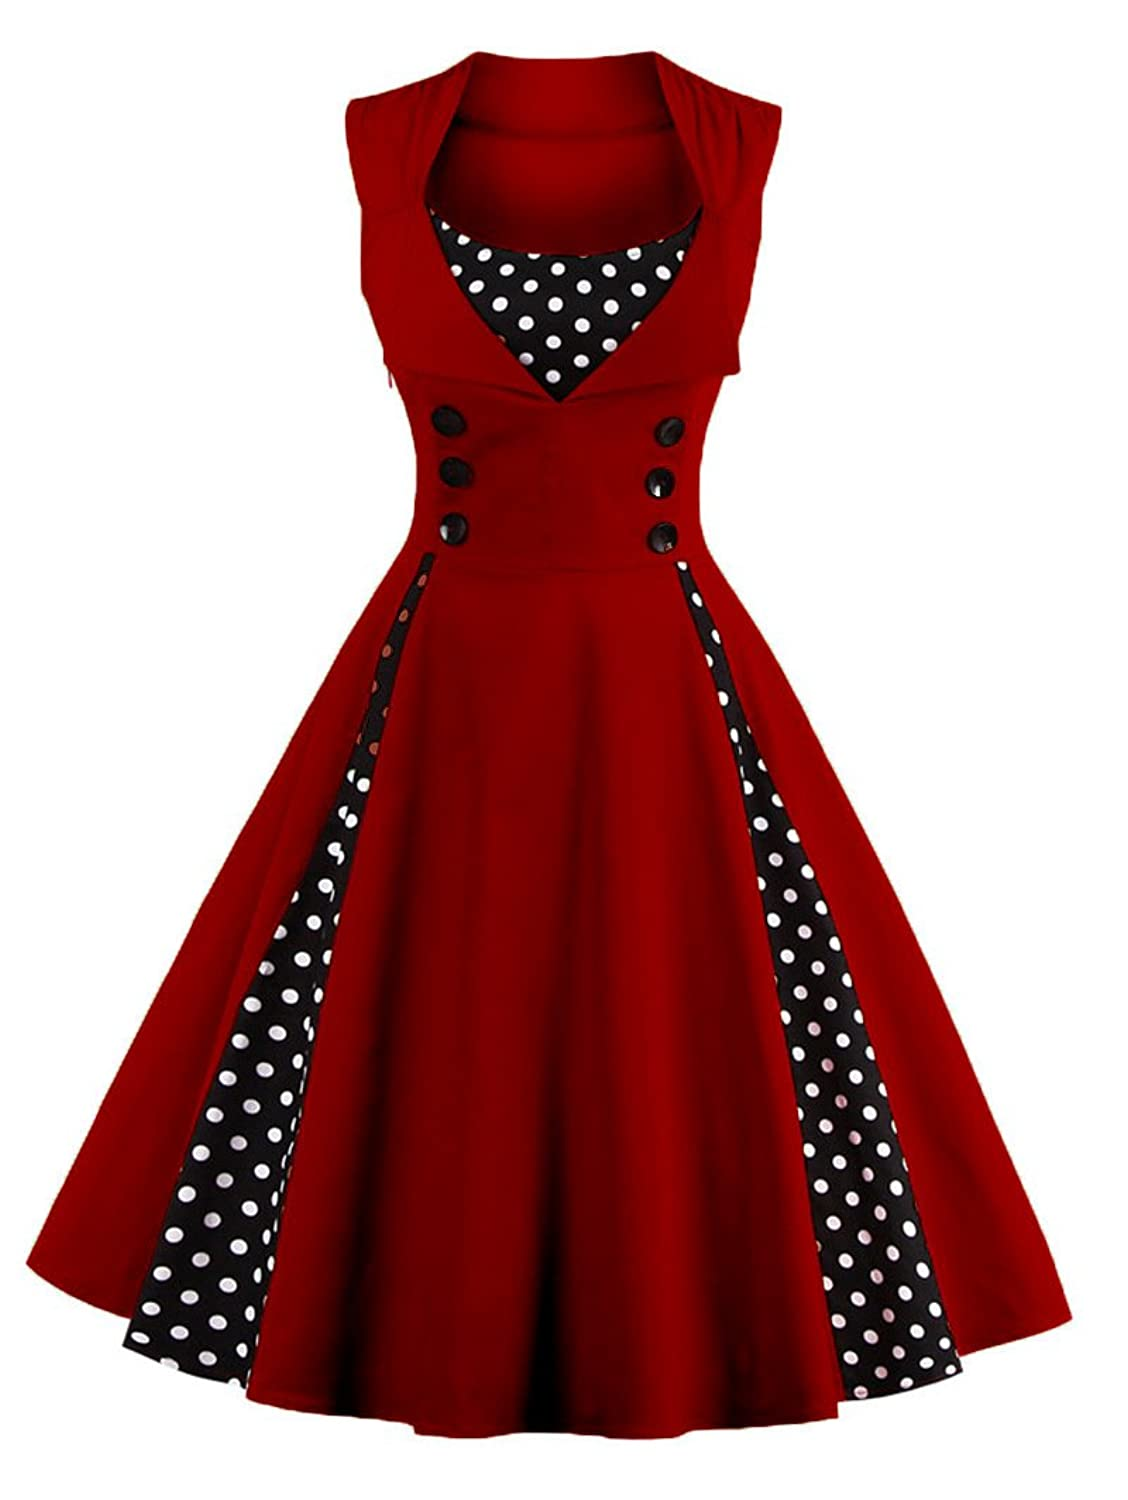 500 Vintage Style Dresses for Sale | Vintage Inspired Dresses LUNAJANY Womens Rockabilly Vintage Polka Dot Pin up Swing Cocktail Party Dress $24.59 AT vintagedancer.com